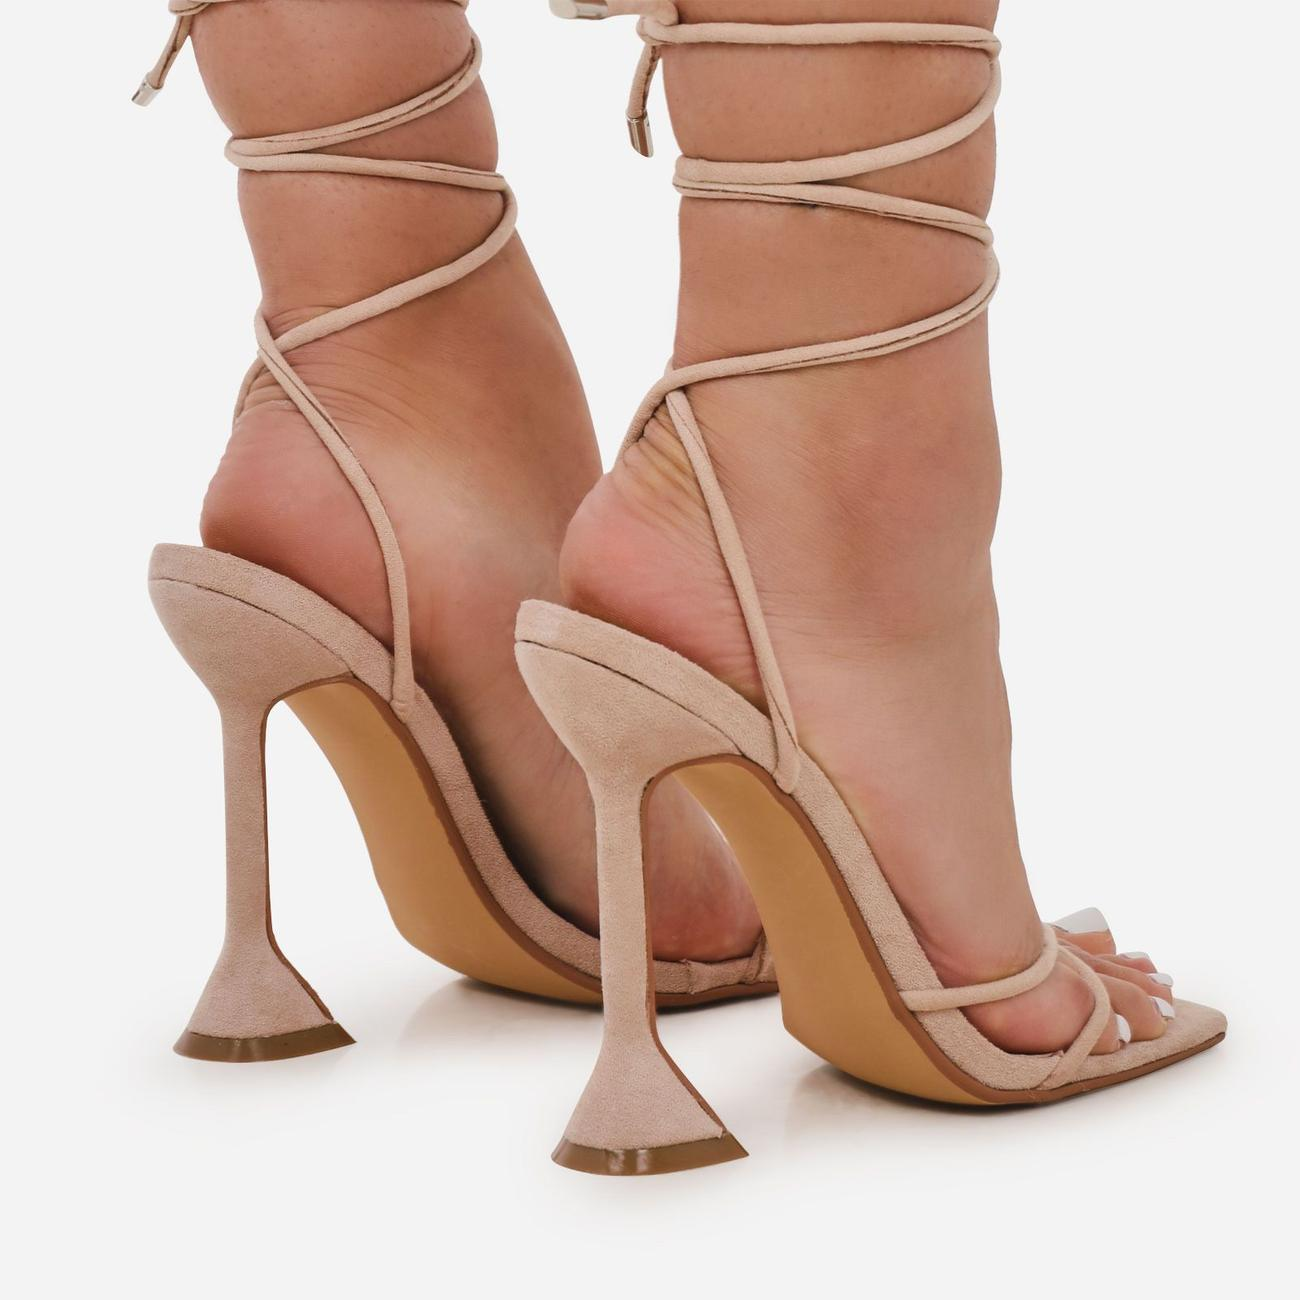 Emily Square Toe Lace Up Pyramid Heel In Nude Faux Suede Image 5